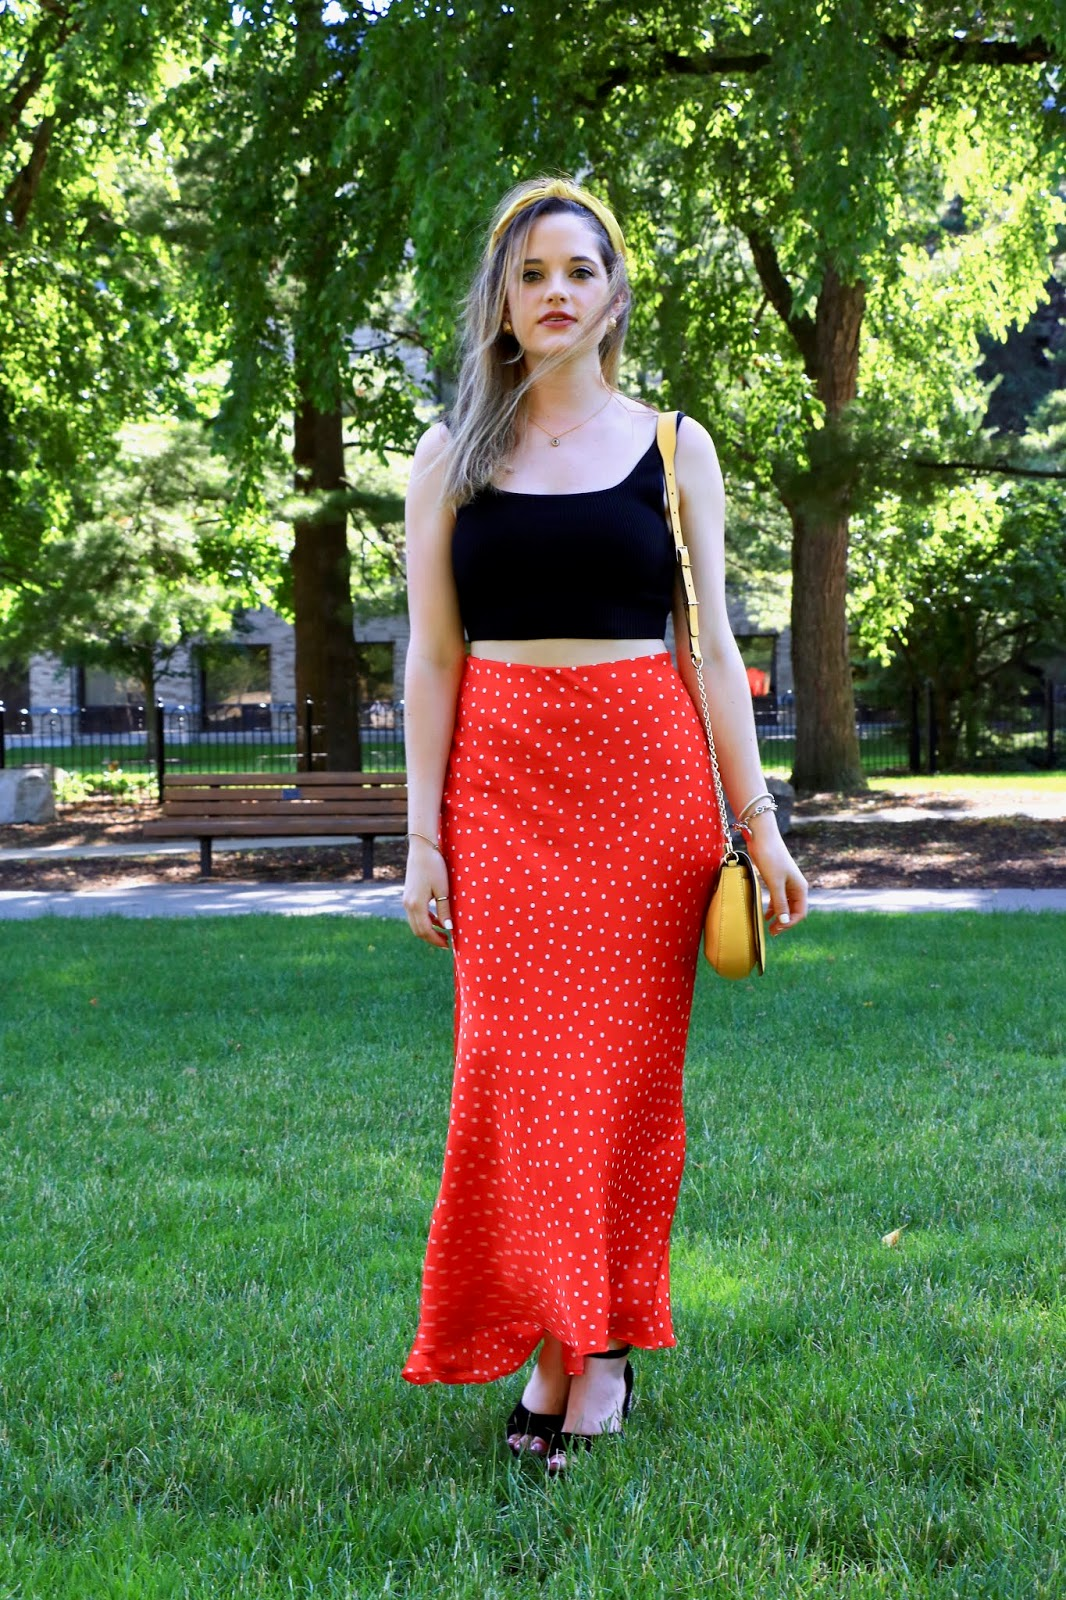 Nyc fashion blogger Kathleen Harper wearing a satin maxi skirt outfit with a black crop top.